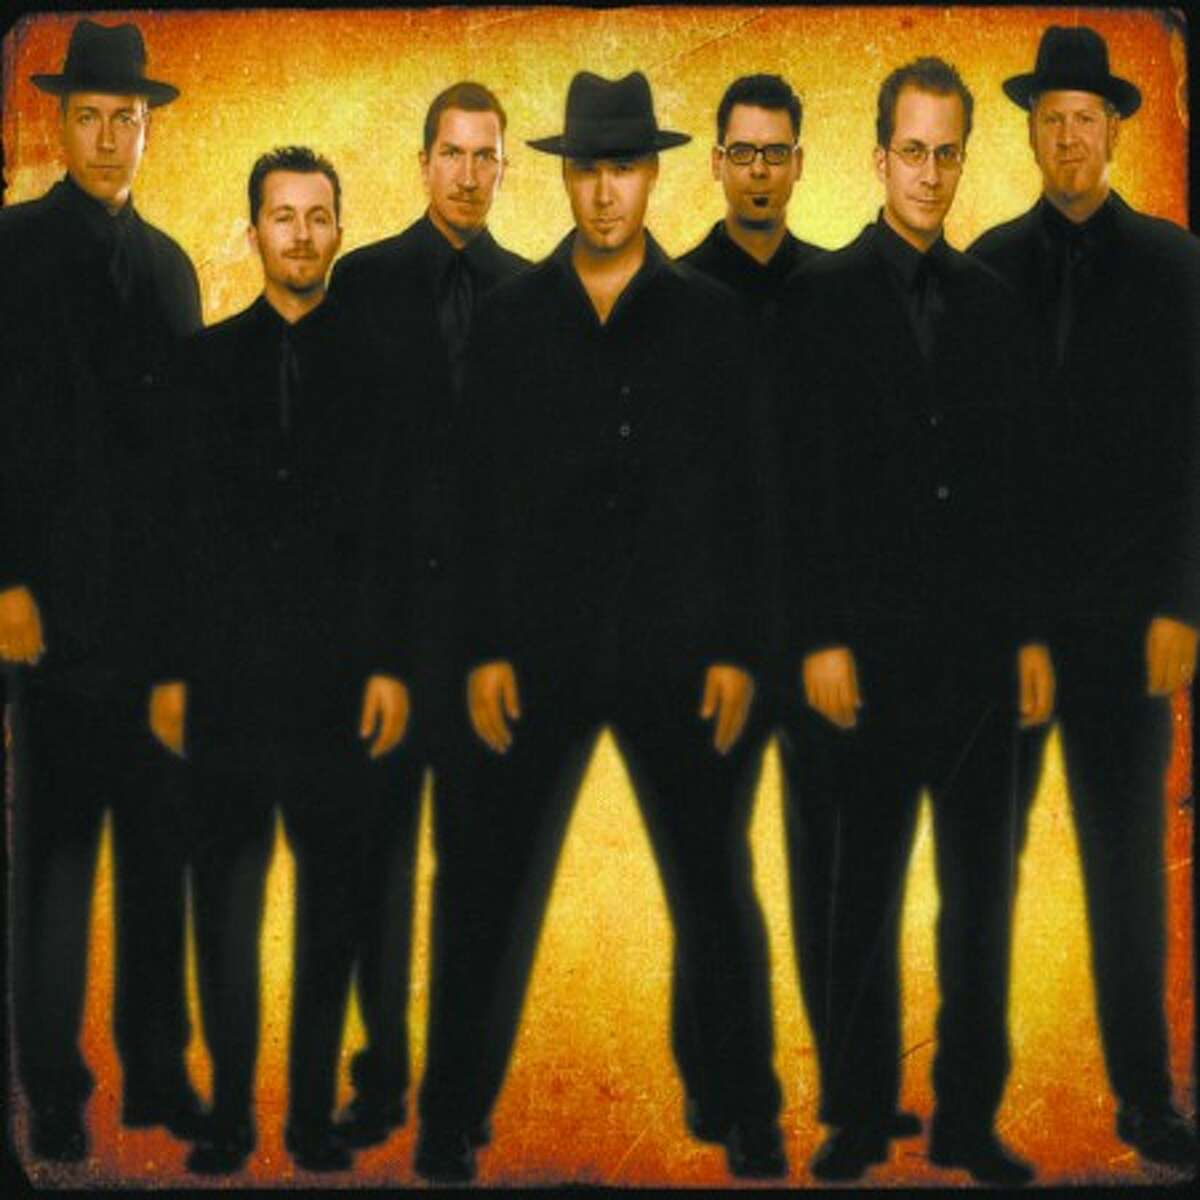 Big Bad Voodoo Daddy will headline the Oyster Festival